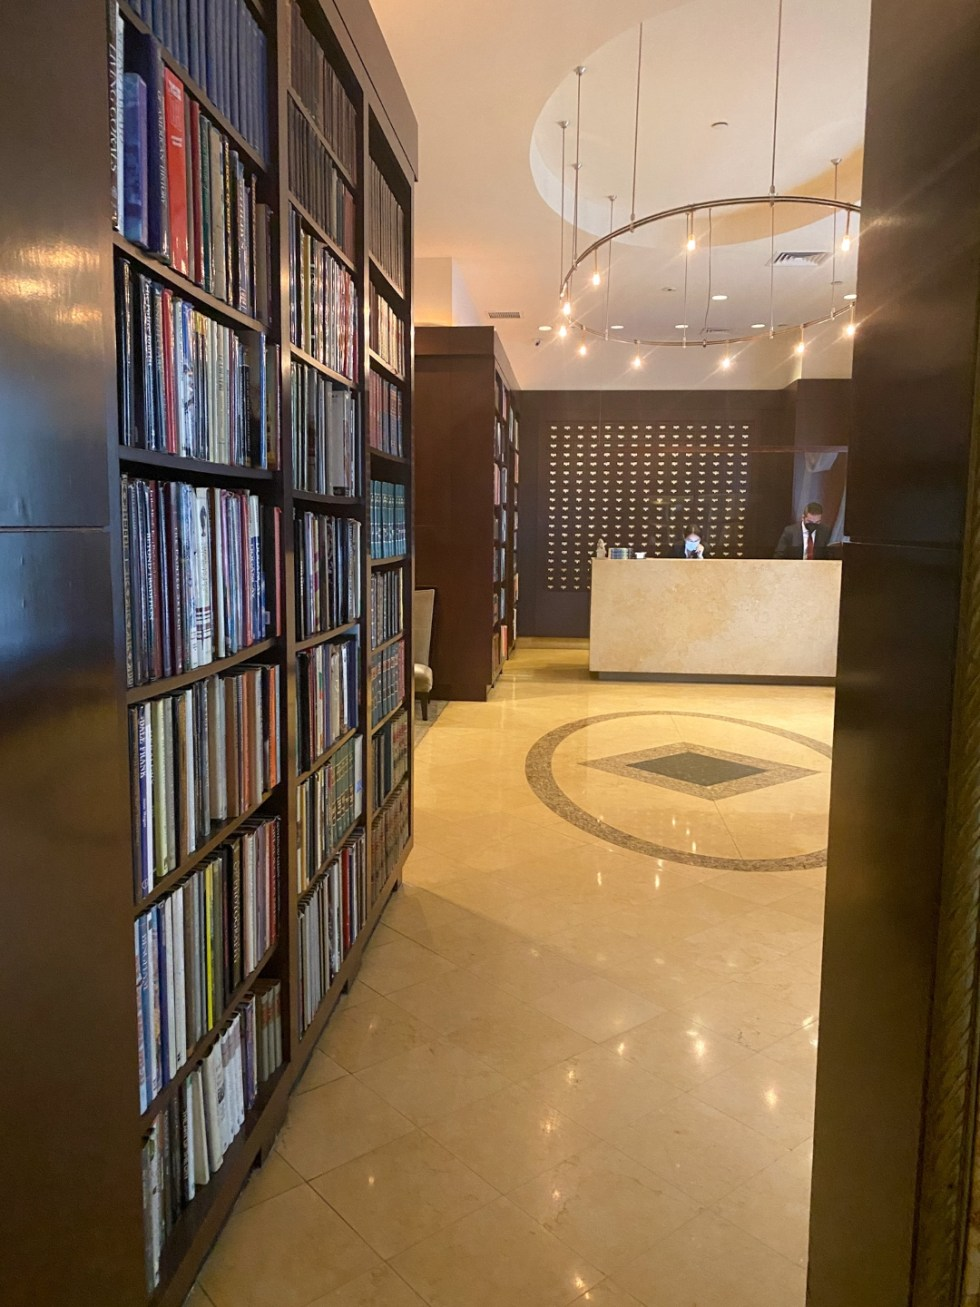 NYC Summer Weekend: Things to Do in NYC in the Summer - I'm Fixin' To - @imfixintoblog   NYC Summer Weekend by popular NC travel blog, I'm Fixin' To: image of a hotel lobby lined with floor to ceiling bookshelves.